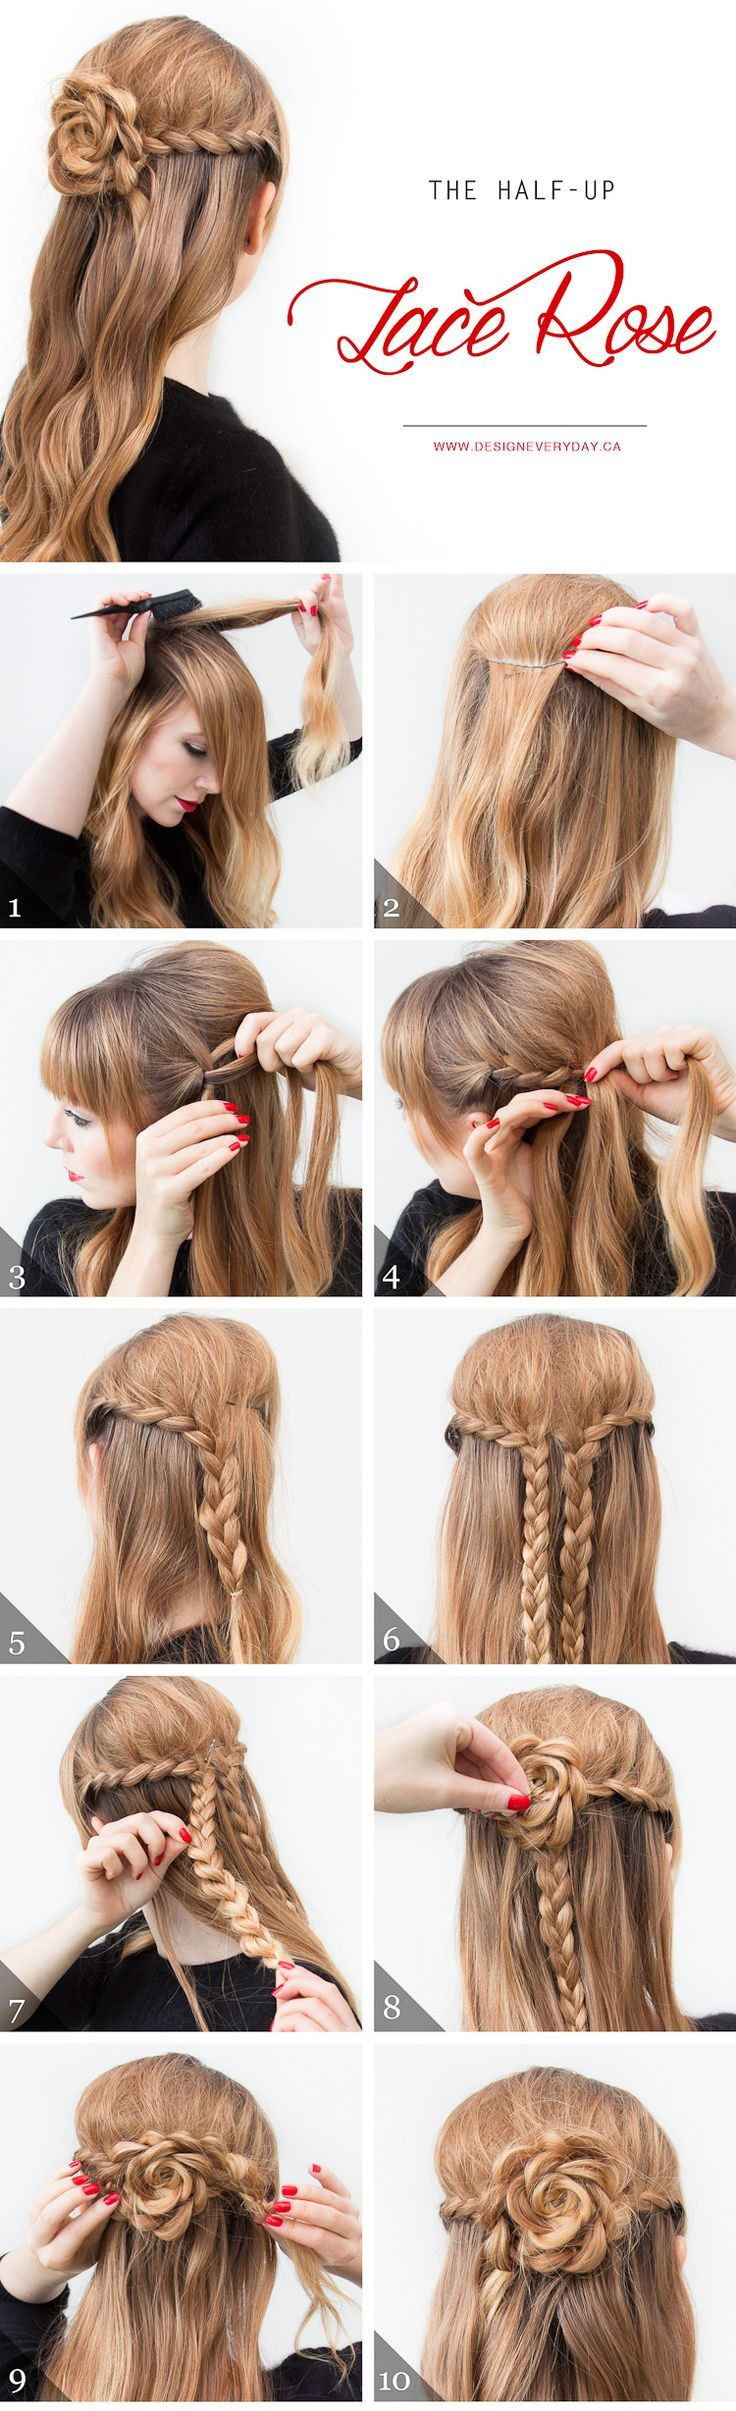 Hairstyles how to diy the half up lace rose tutorials hair style